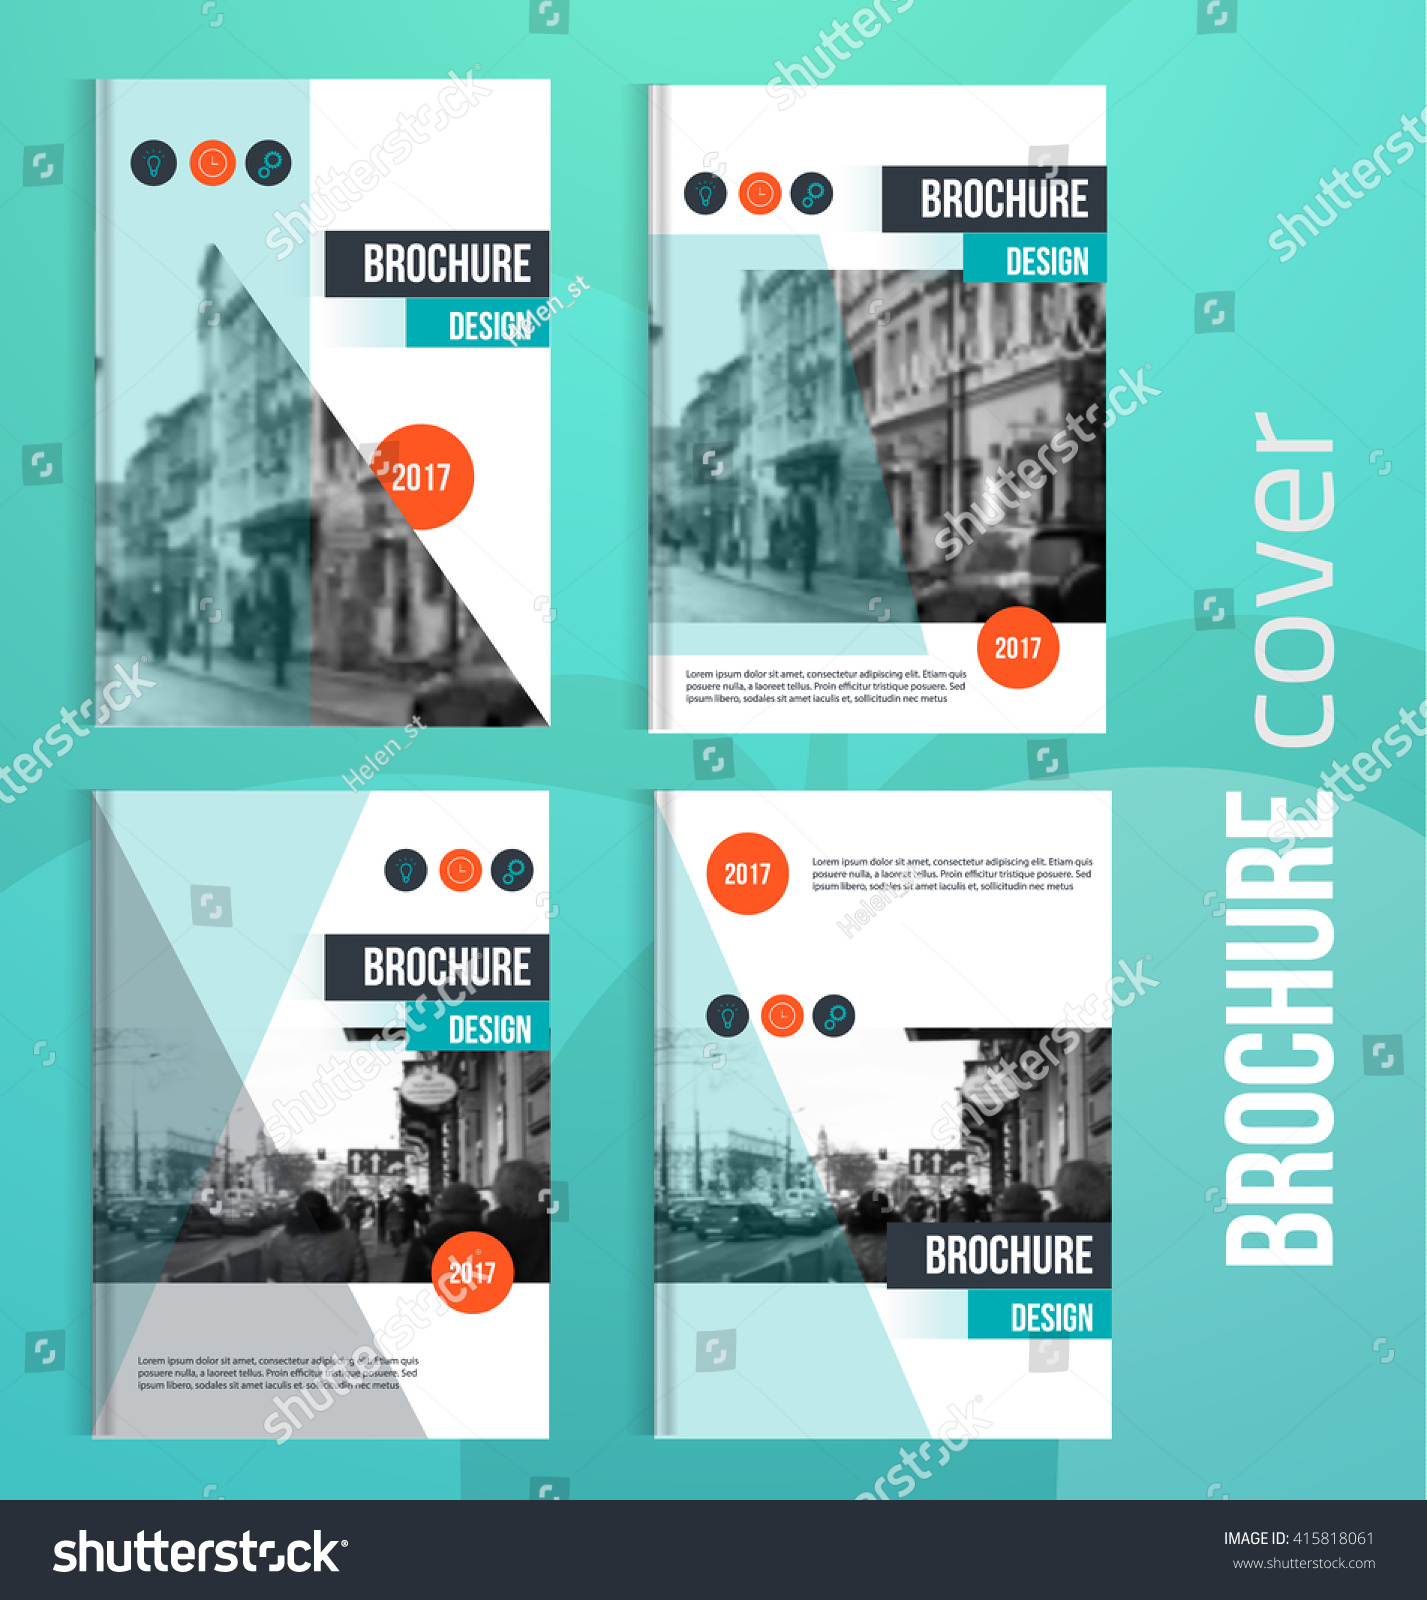 Set of Vector brochure cover templates with blured city landscape Business brochure cover design flyer brochure cover professional corporate brochure cover